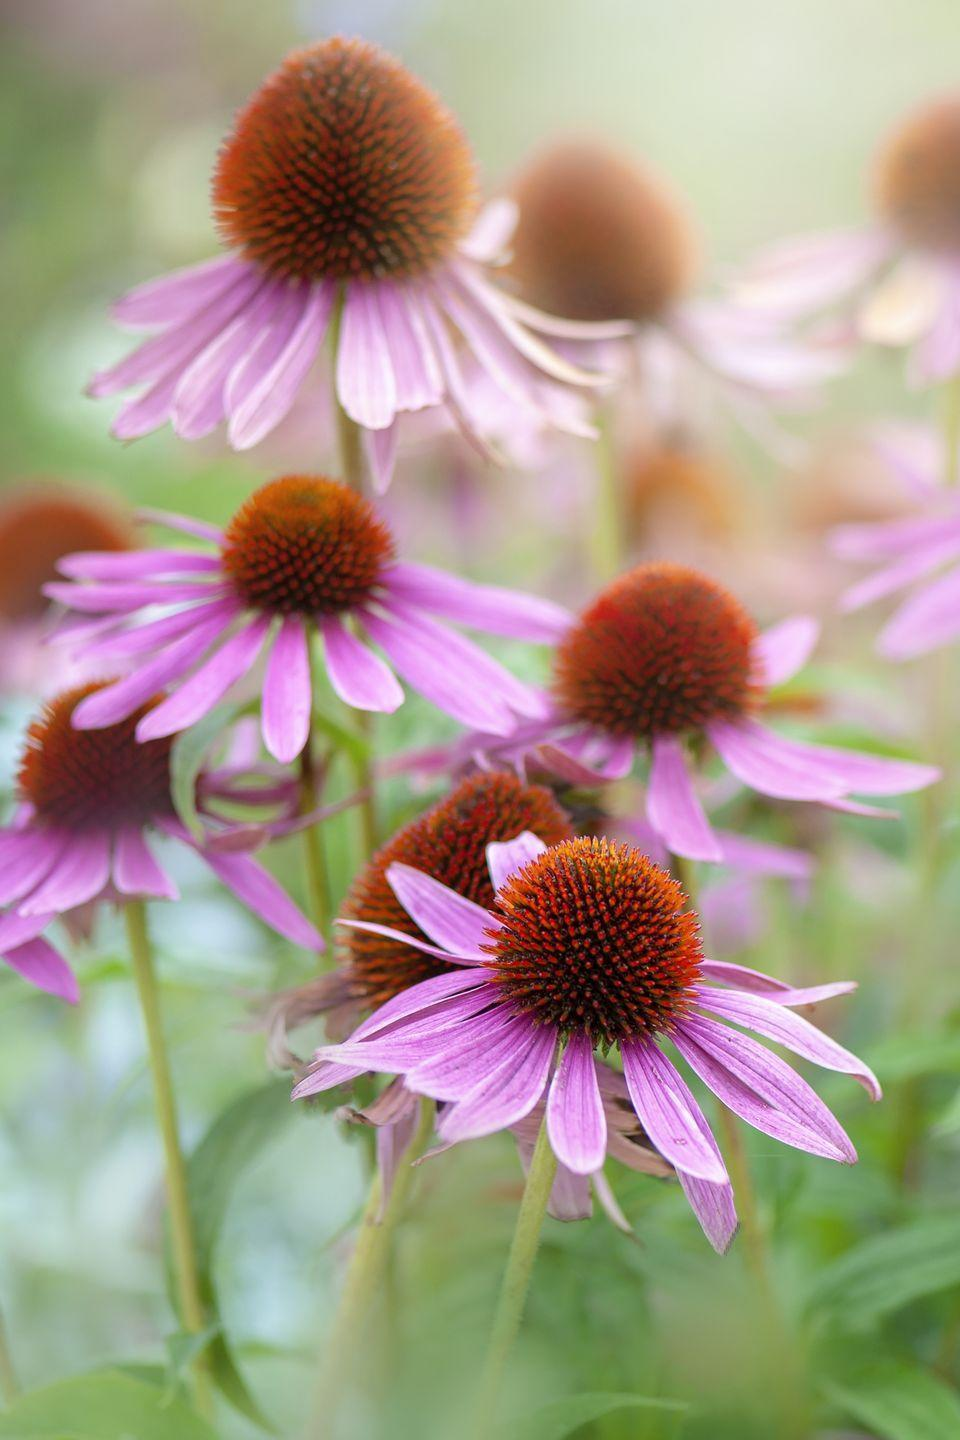 """<p>The orange centers of coneflowers (aka Echinacea) is full of rich nectar that will attract loads of honeybees. Plant these hardy, sun-loving plants in the fall or spring. </p><p><a class=""""link rapid-noclick-resp"""" href=""""https://www.amazon.com/Sweet-Yards-Seed-Co-Coneflower/dp/B07N31MXK3/?tag=syn-yahoo-20&ascsubtag=%5Bartid%7C10050.g.32157369%5Bsrc%7Cyahoo-us"""" rel=""""nofollow noopener"""" target=""""_blank"""" data-ylk=""""slk:SHOP NOW"""">SHOP NOW</a></p>"""